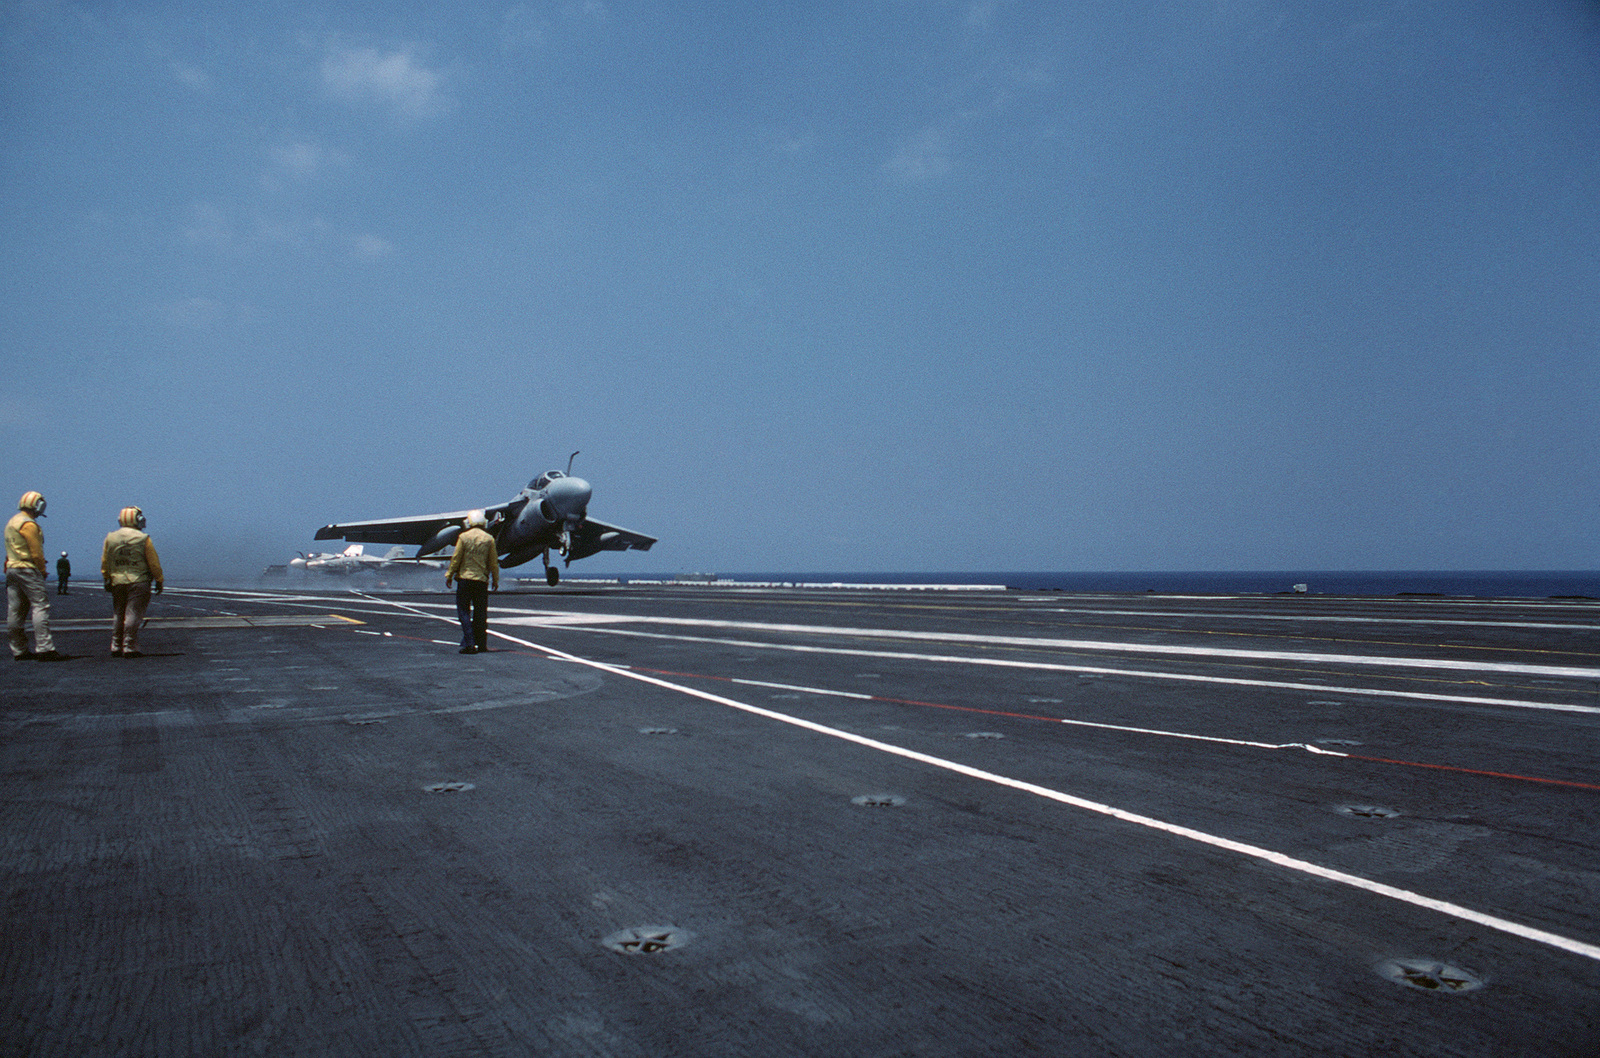 """An A-6E Intruder aircraft executes a""""touch and go""""landing during flight operations aboard the nuclear-powered aircraft carrier USS DWIGHT D. EISENHOWER (CVN 69).  Note:  First view in a series of three"""